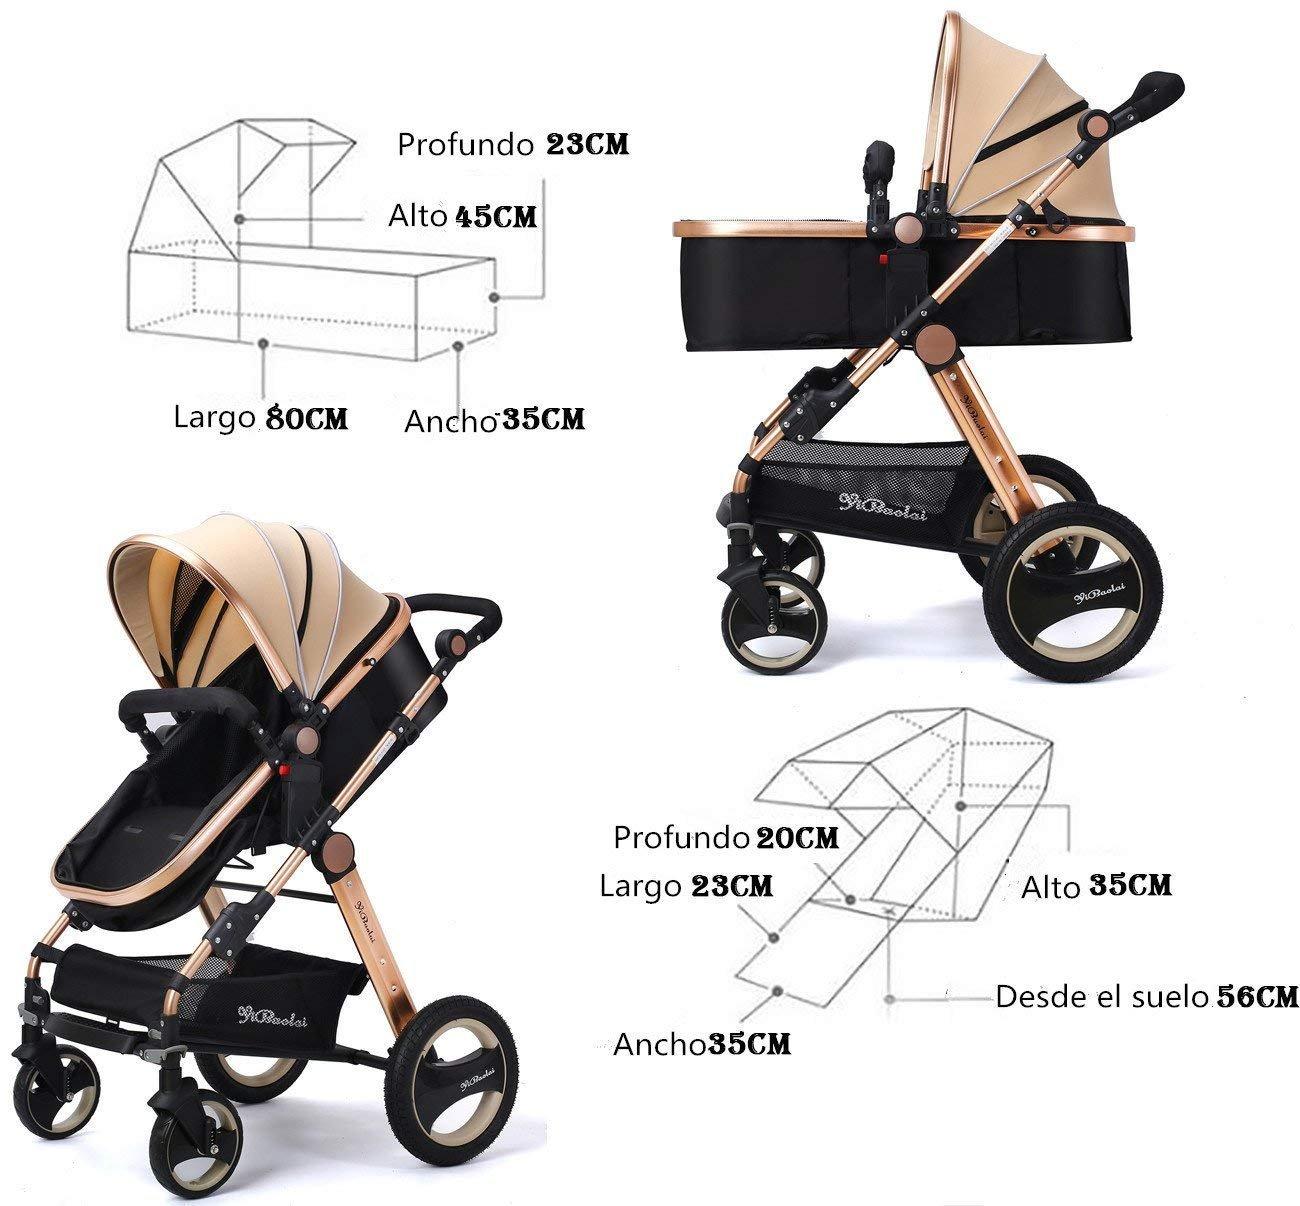 YBL High Landscape Toddlers Prams 2 in 1 Cheap from Birth Newborn Pushchairs Baby Strollers fold Two Way with Cup Holder and Meal Plate